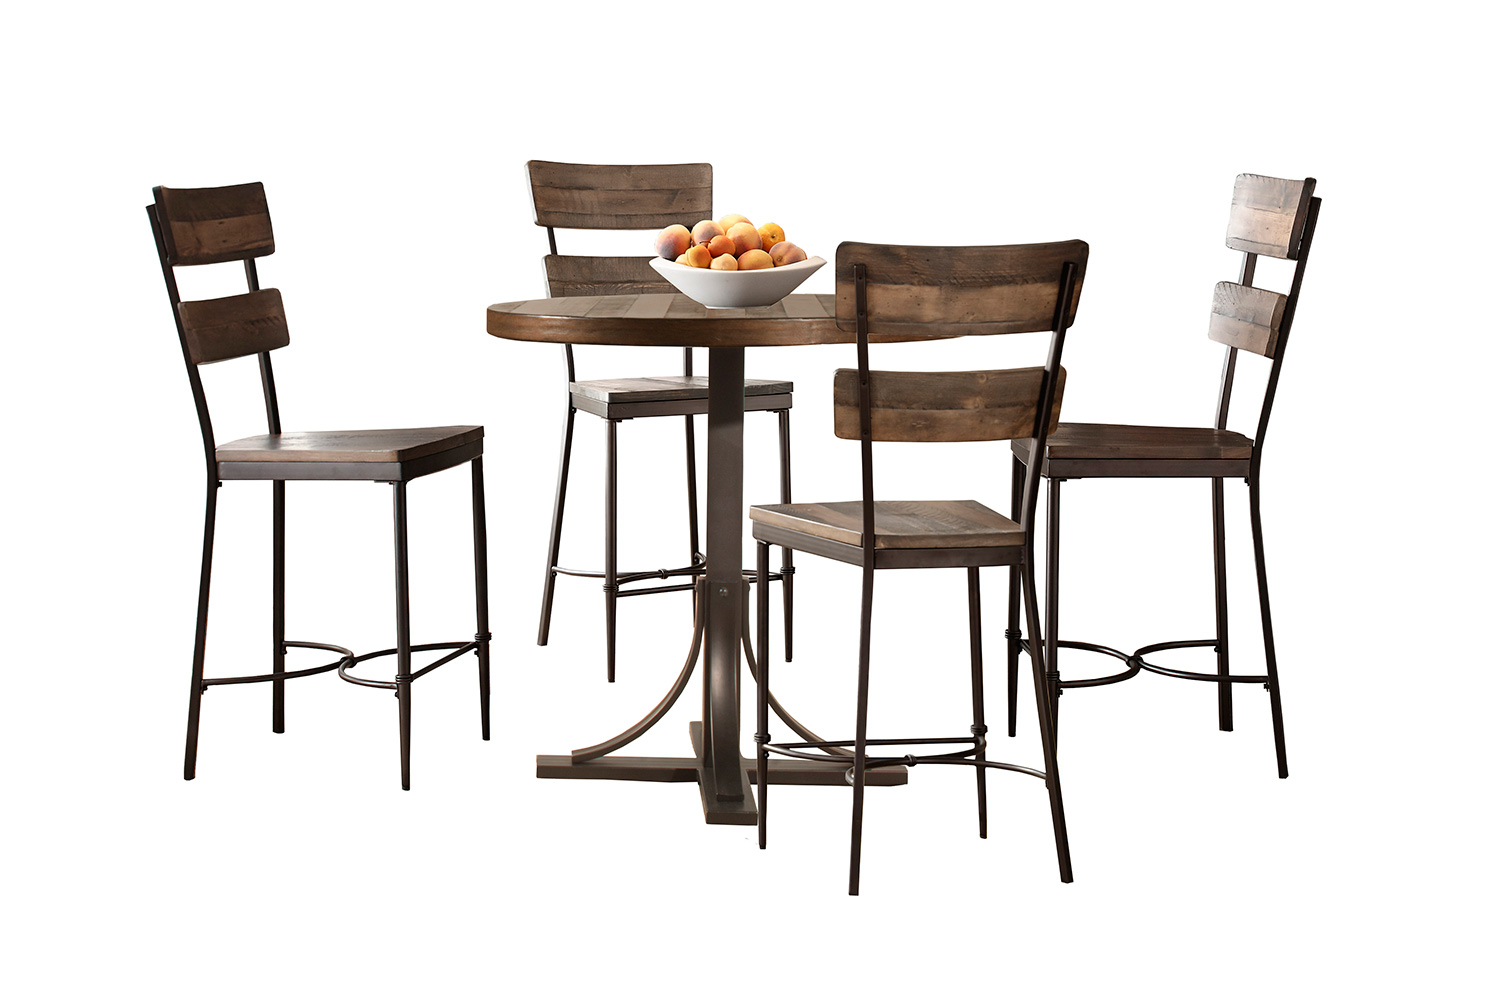 Hillsdale Jennings 5 Piece Counter Height Dining Set with Non-Swivel Counter Height Stools - Walnut Wood/Brown Metal